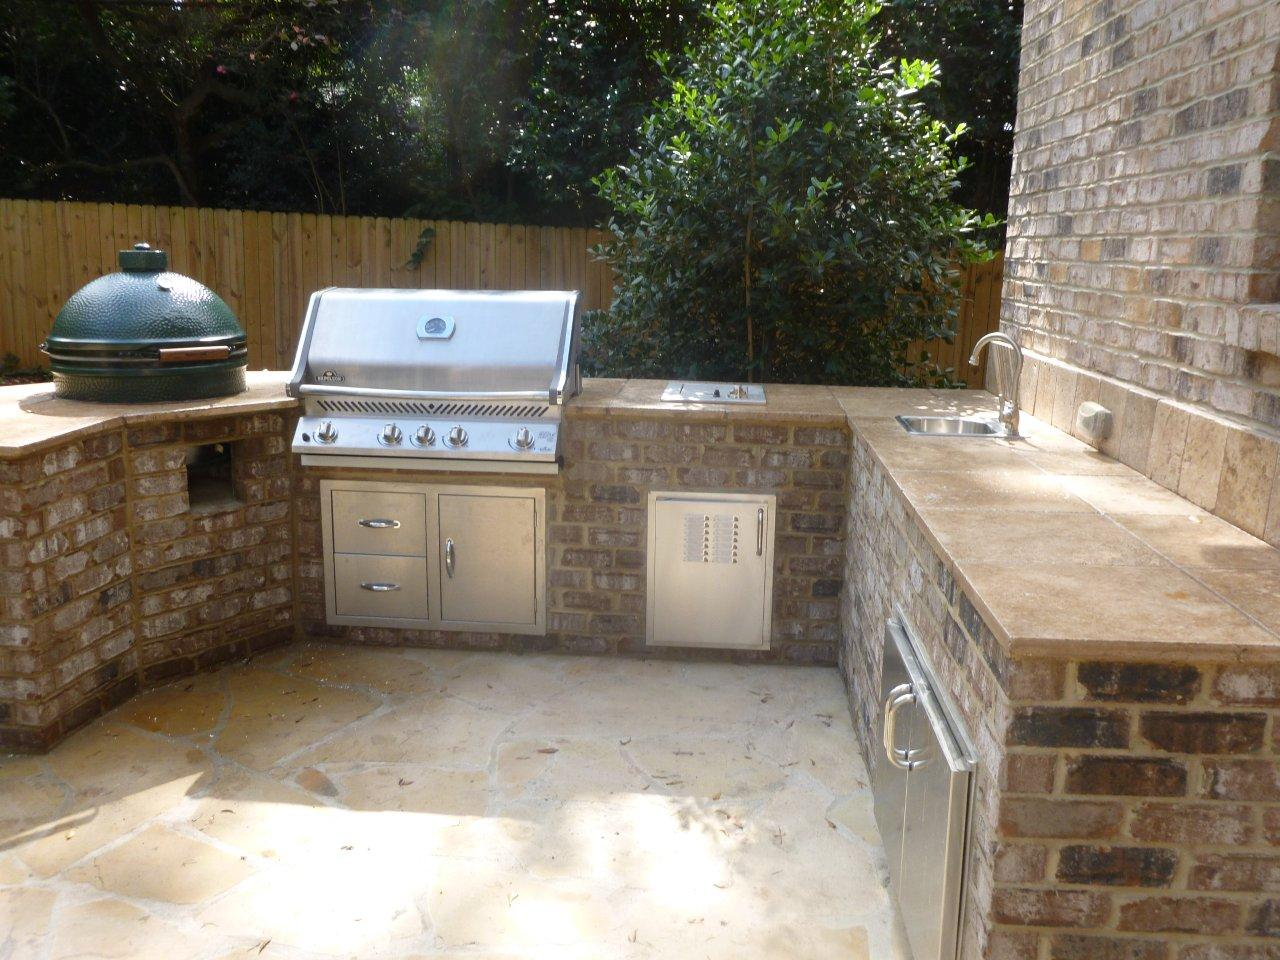 Outdoor Kitchen with Grill and Egg